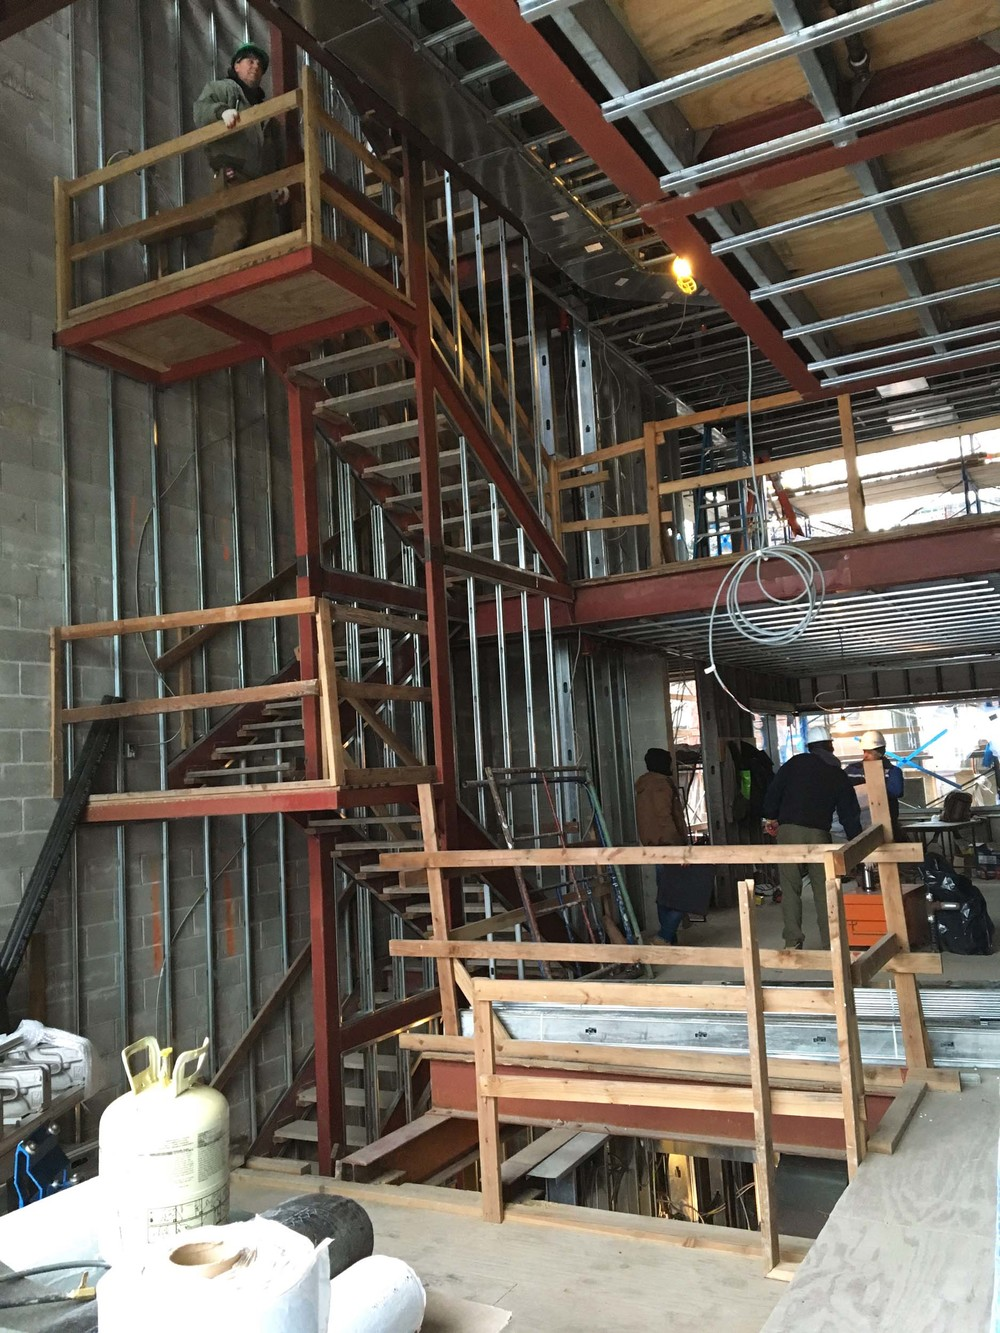 View of the steel framing in the staircase